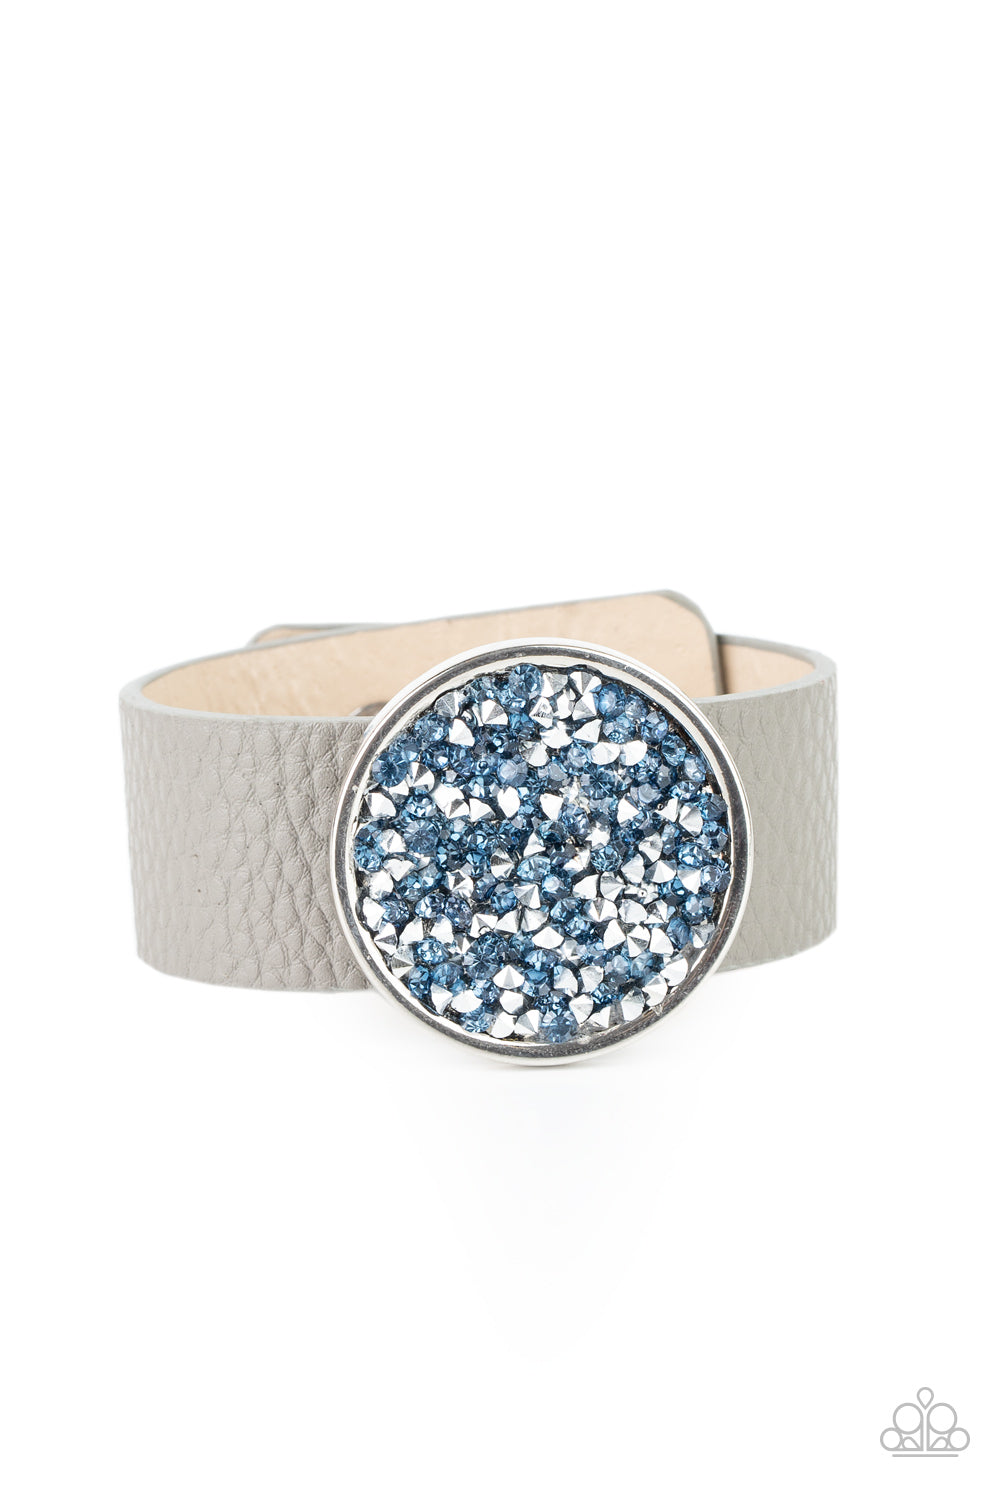 Stellar Escape Blue Bracelet